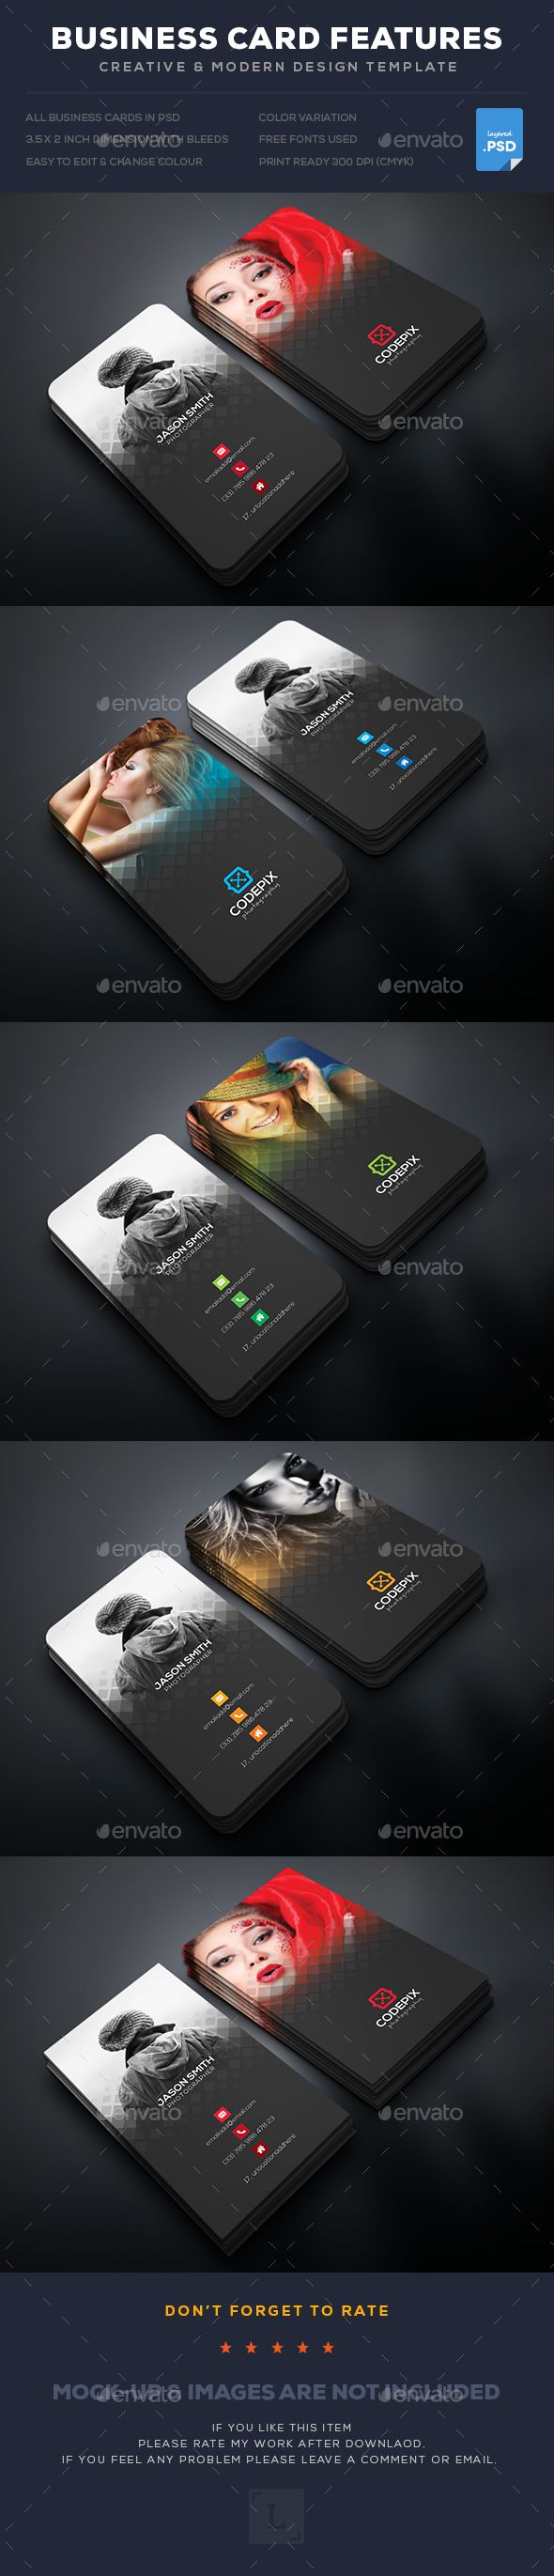 Photography business card pinterest photography business cards photography business card psd template green white download httpsgraphicriveritemphotography business card18369344refpxcr reheart Choice Image